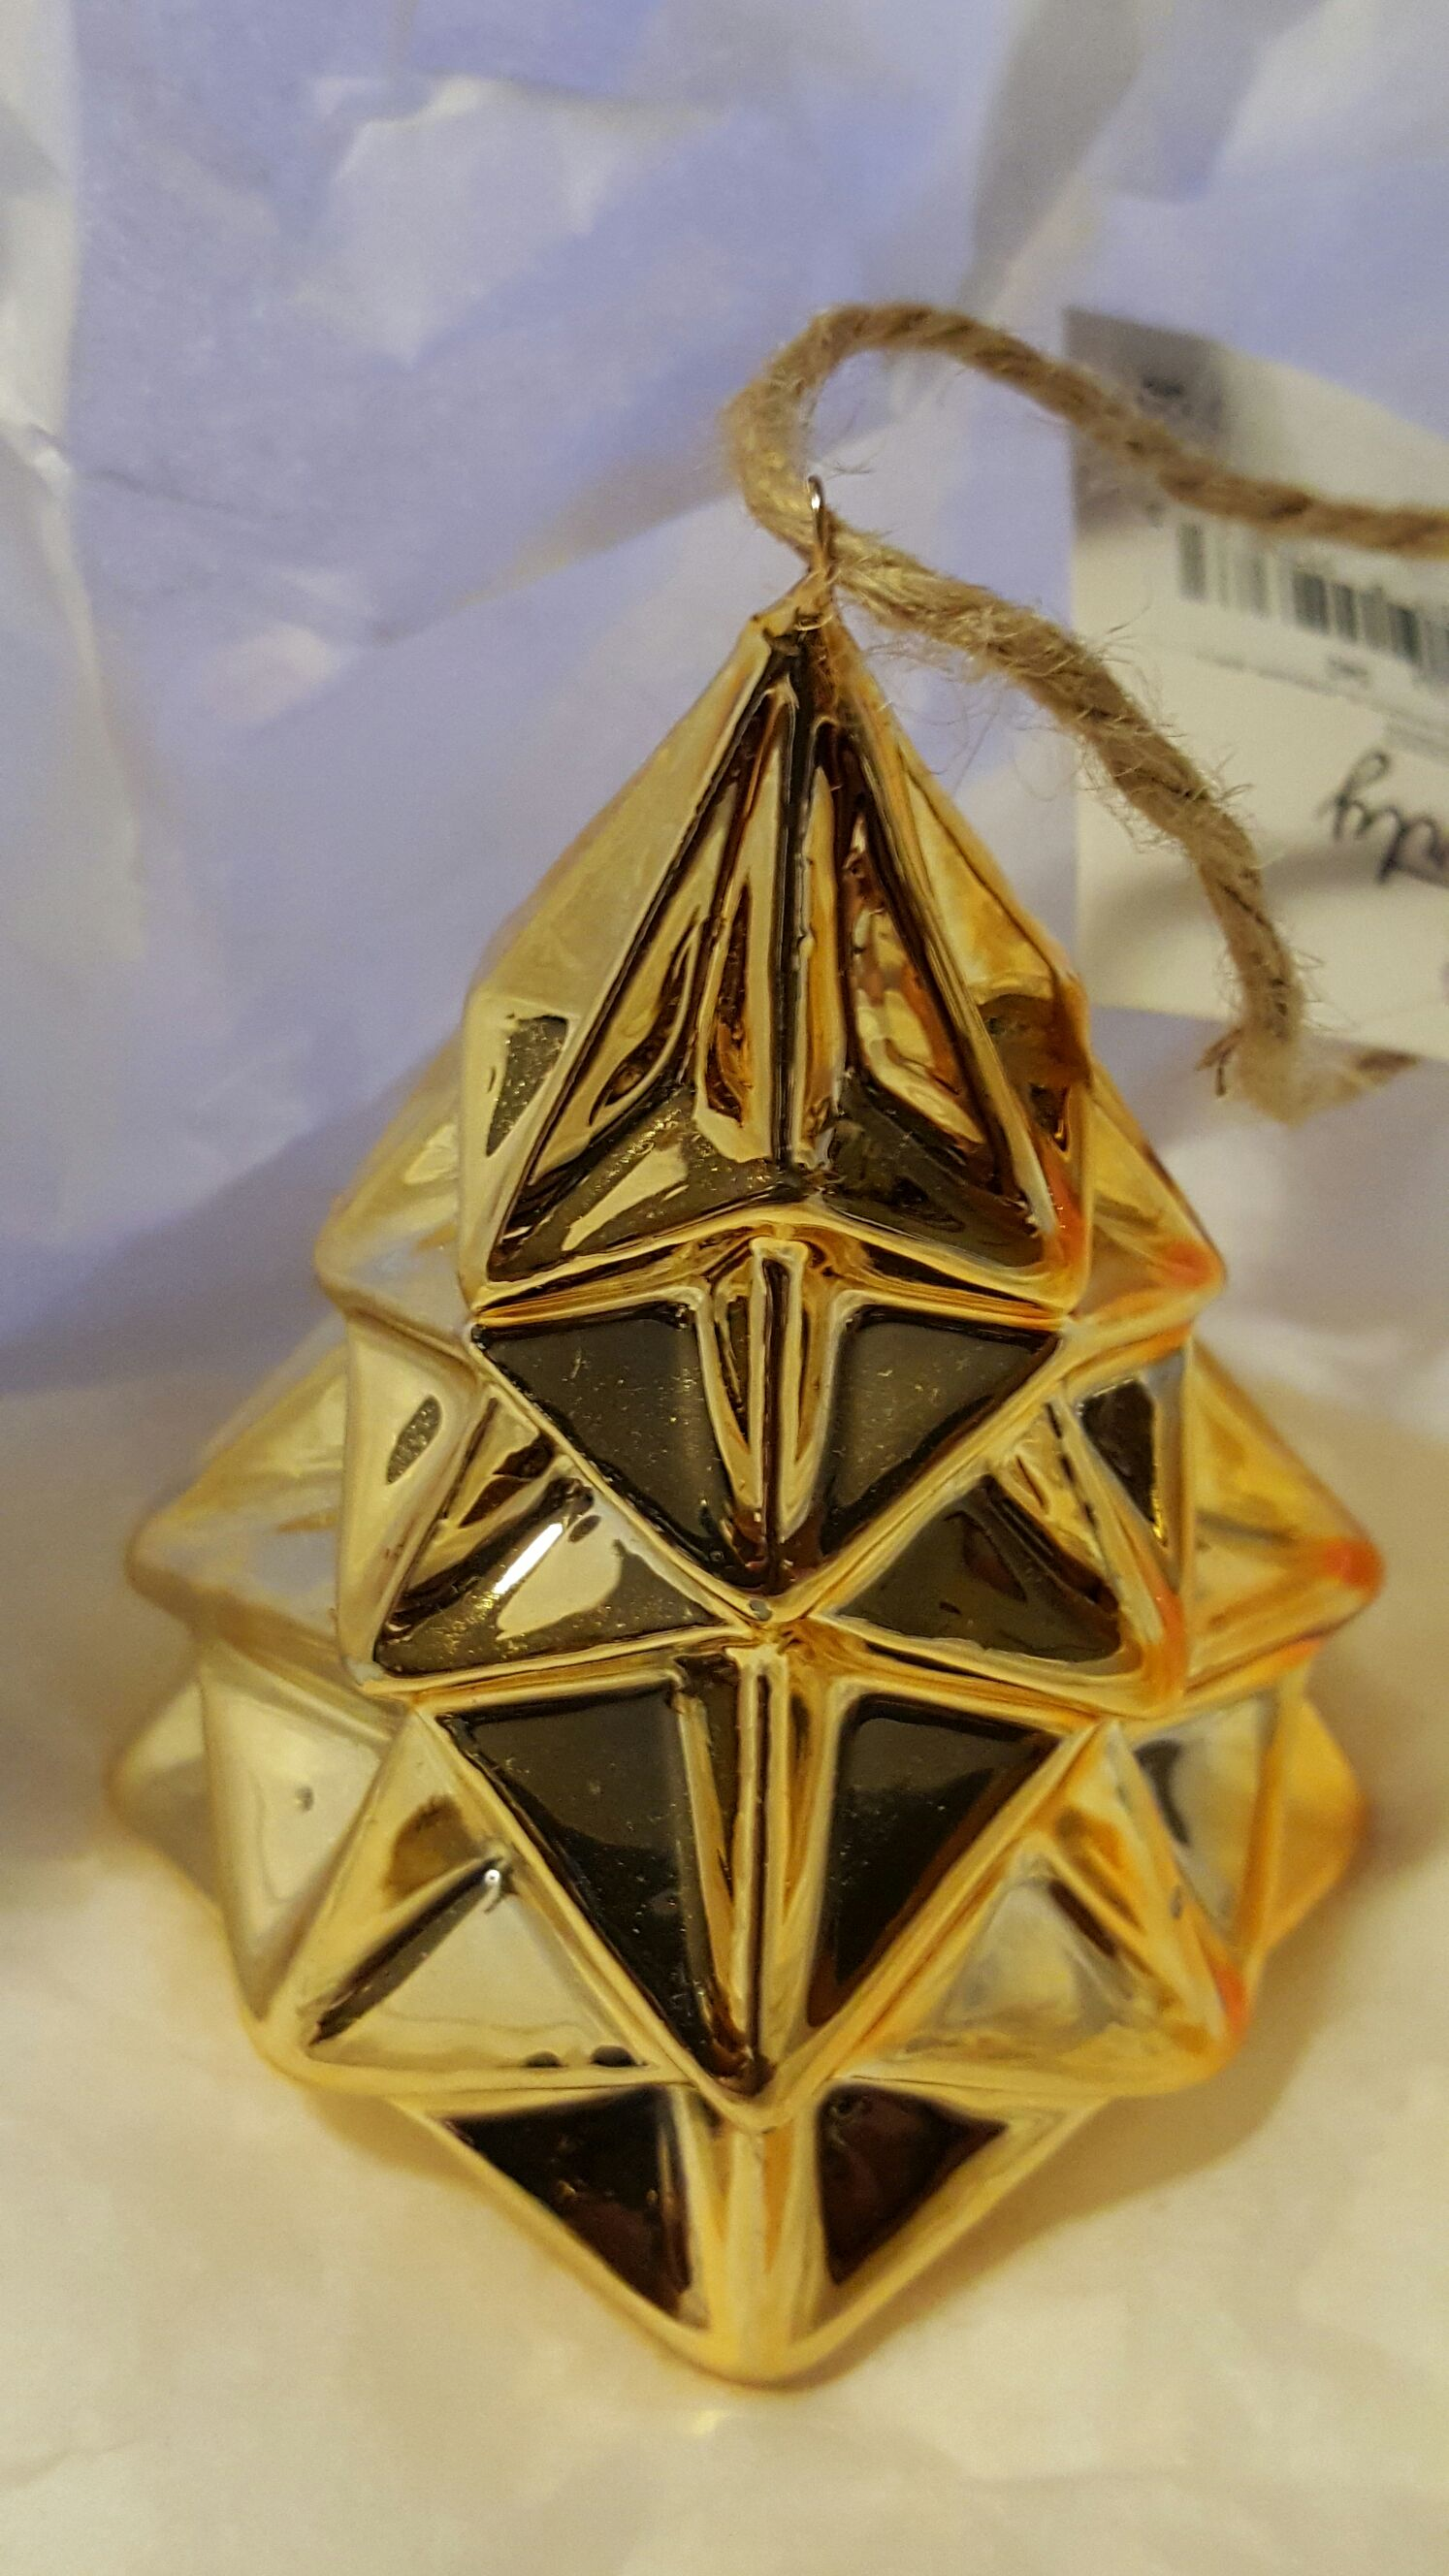 3D Gold Christmas Tree Ornament - Arty (2016) front image (front cover)